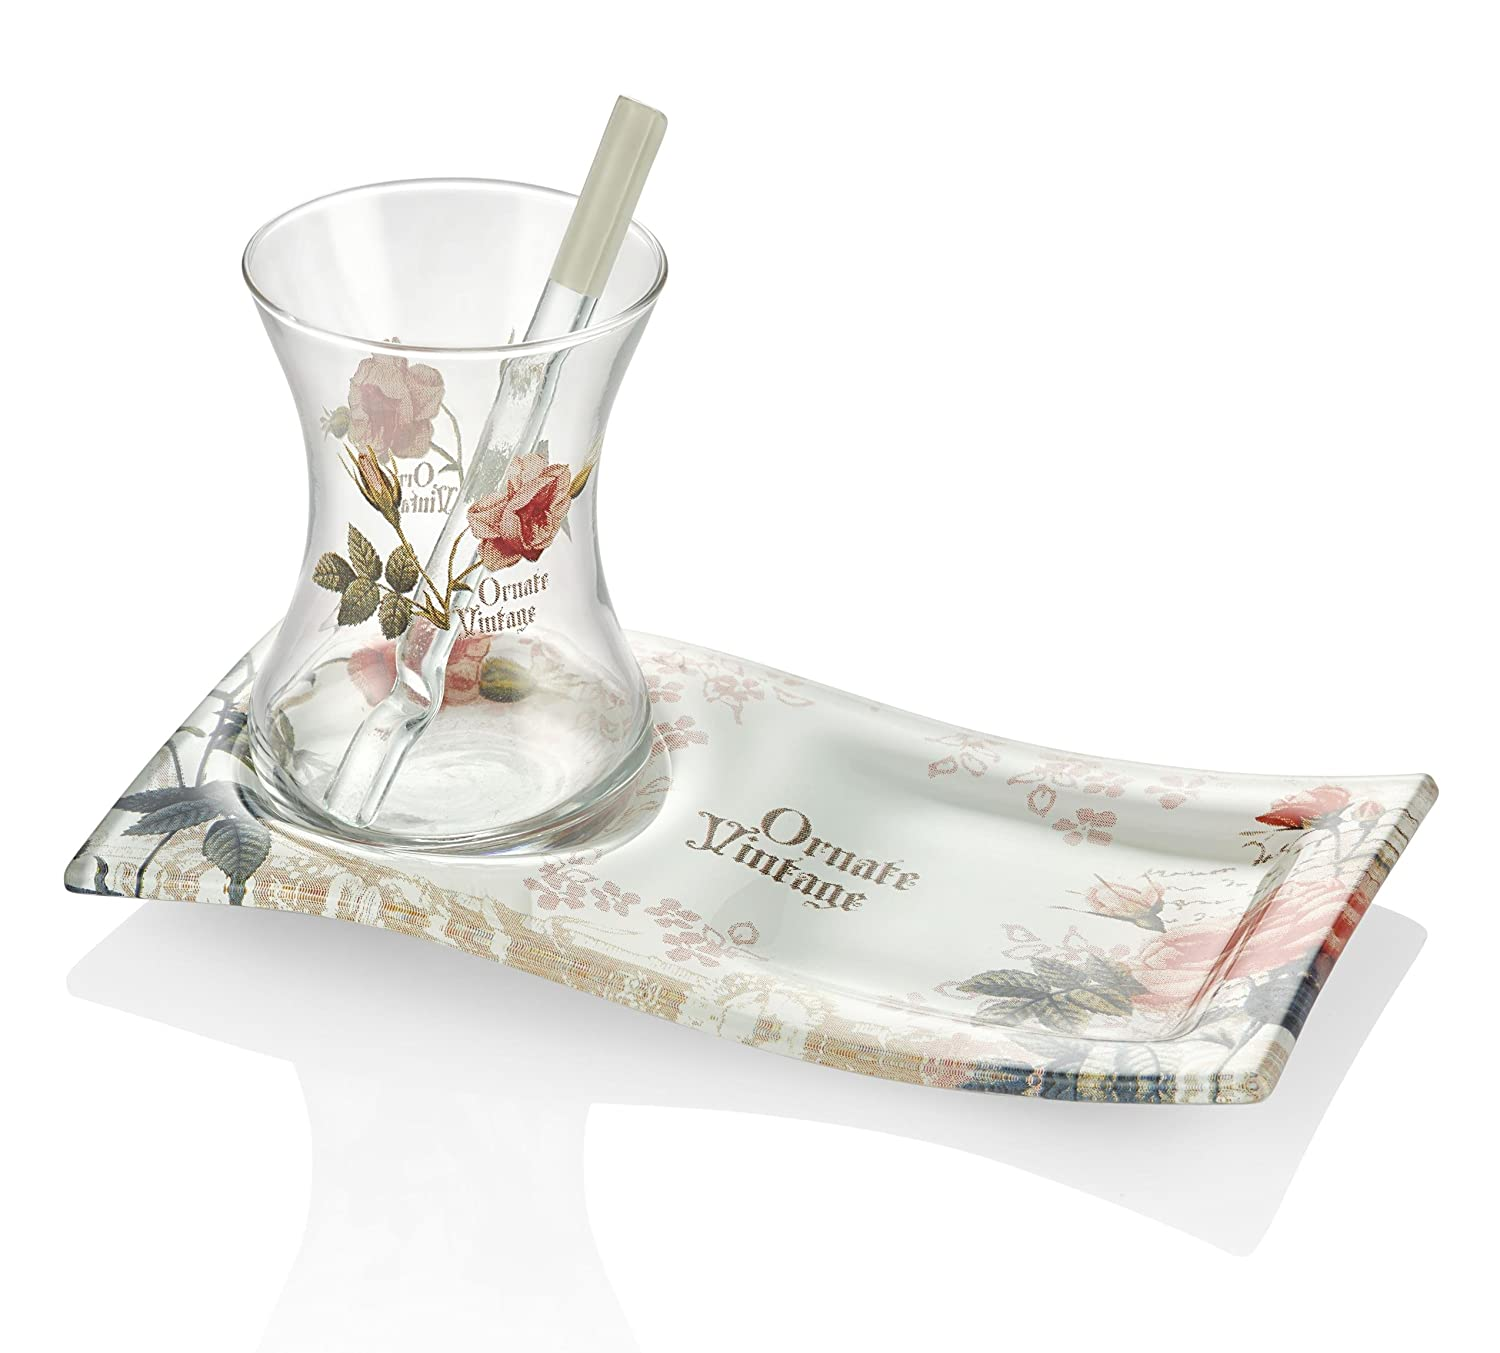 /Oriental Turkish Tea Glasses Set in a modern look Cay Bardagi Saucer Square Sensation 18/Piece Tea Set Made of High Quality Glass for Hot Drinks/